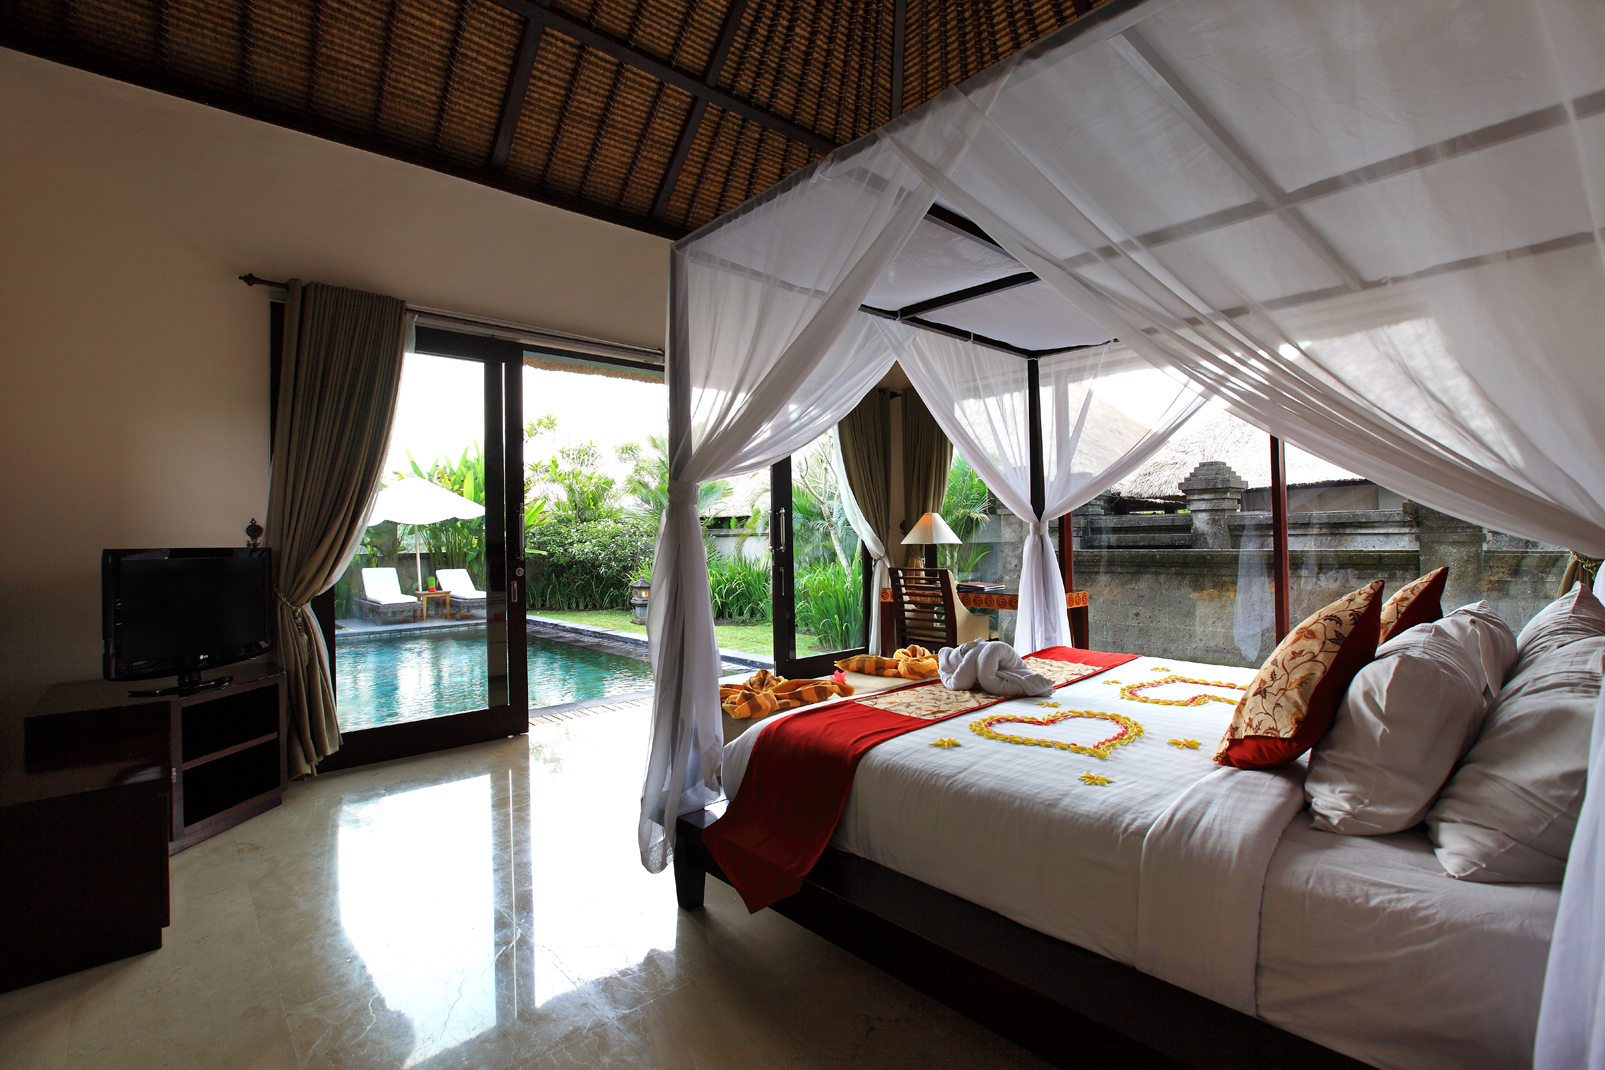 Santi Mandala Villa & Spa - One bedroom luxury pool villa | The room